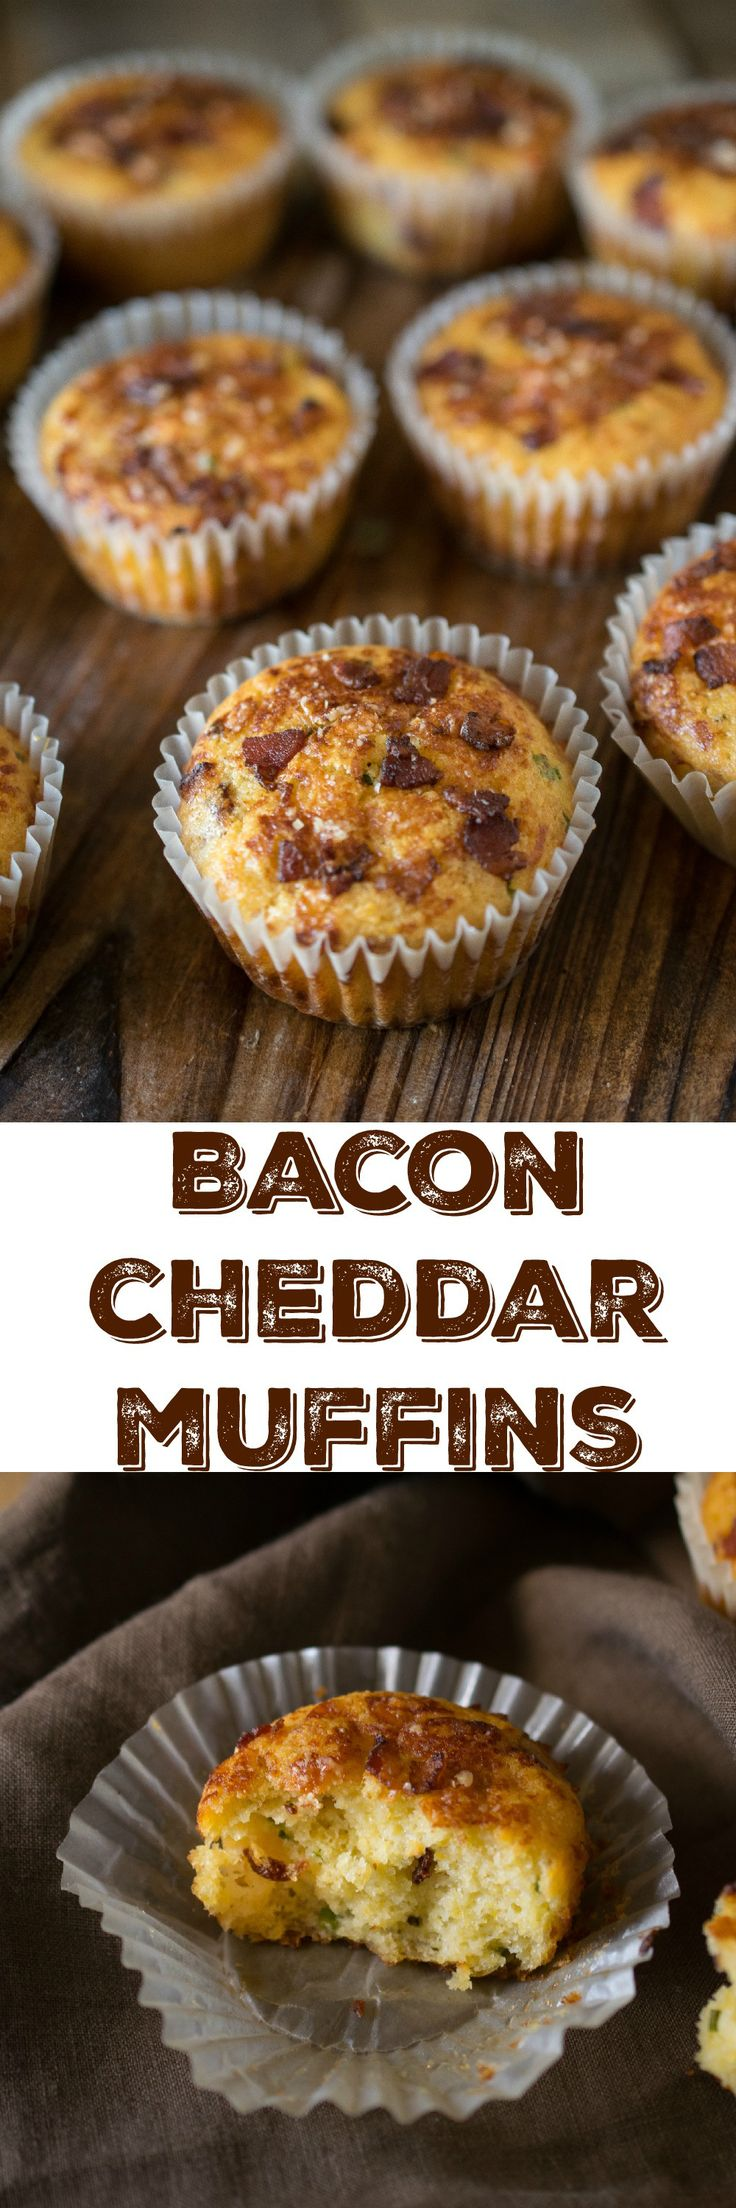 Bacon cheddar muffins - Bacon in a soft, fluffy muffin with cheese! Does it get any better than that?